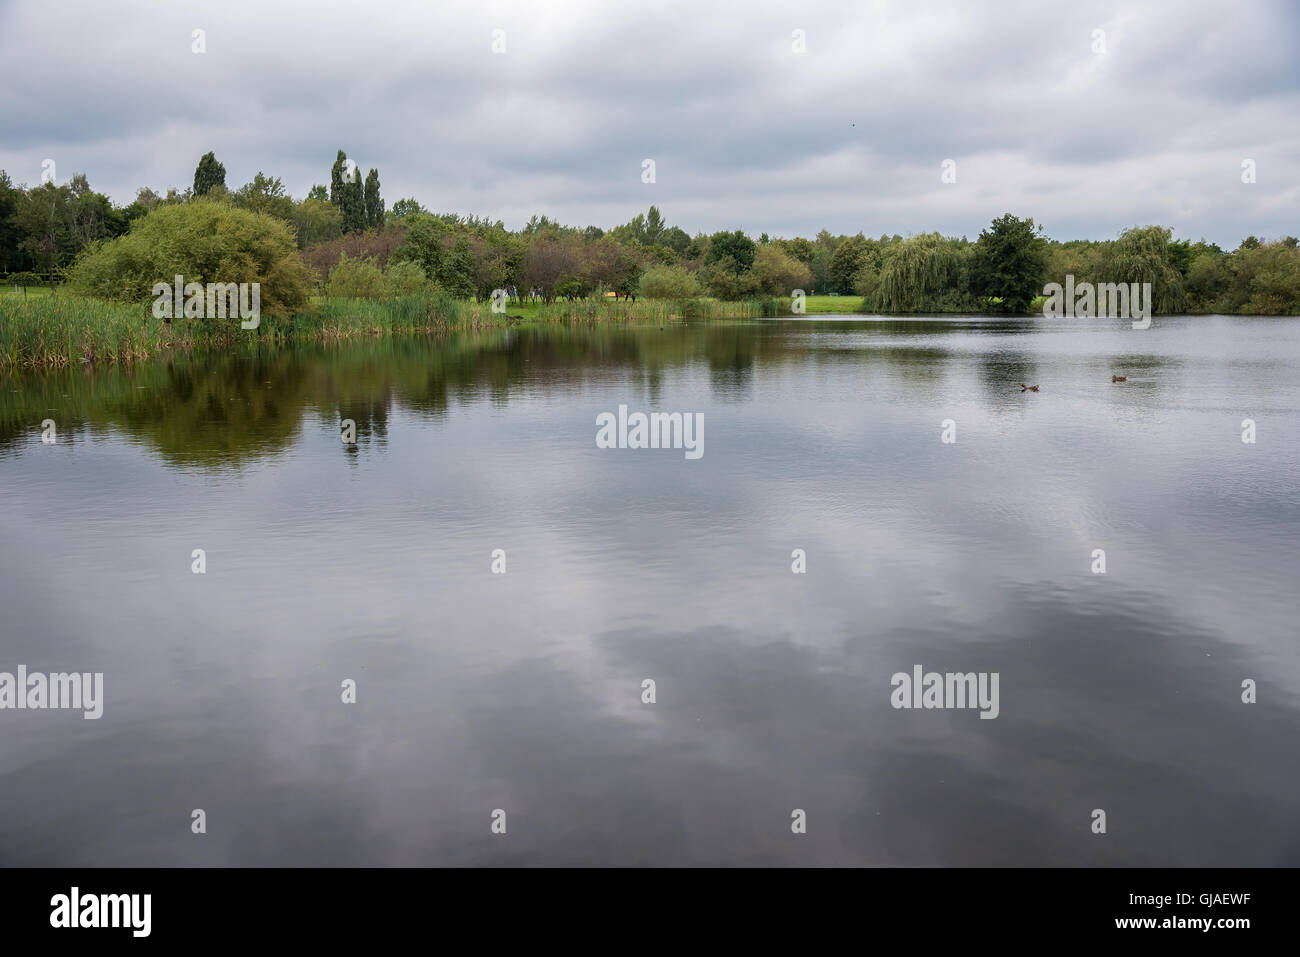 Valley of Three Ponds in Katowice on a cloudy day, Poland Stock Photo